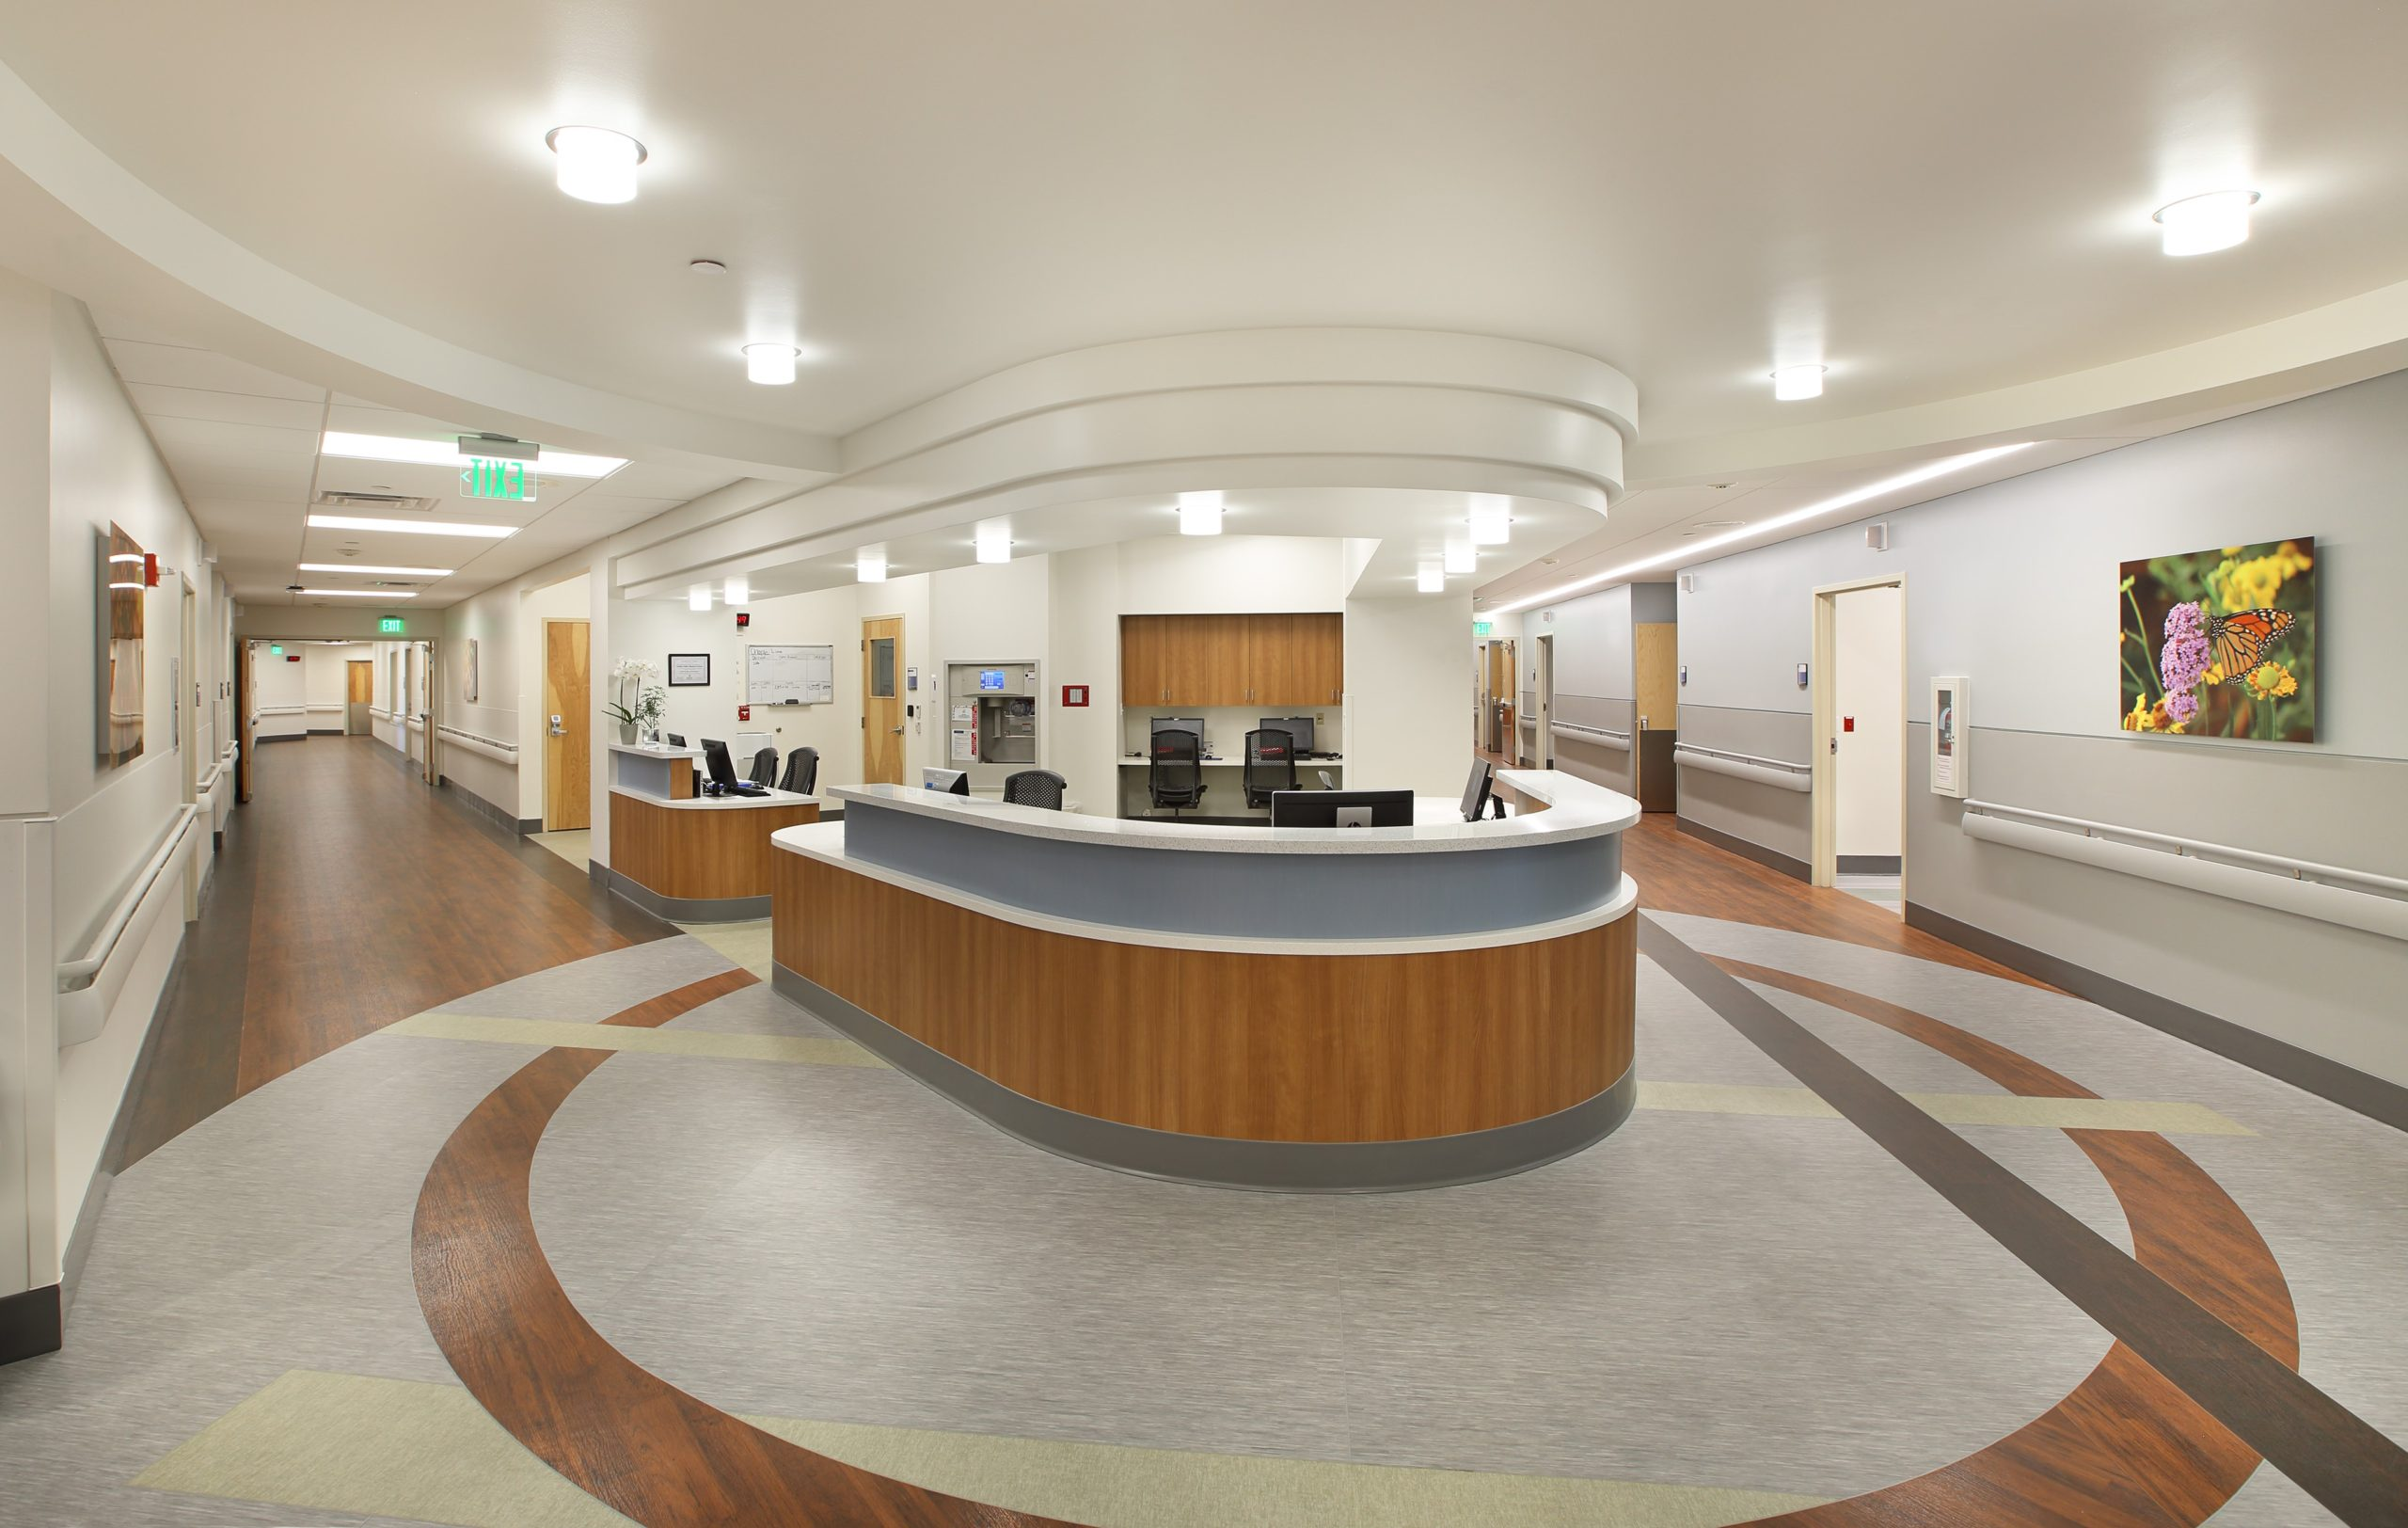 Nurses main desk with halls on both sides to patient rooms. Recently remodeled clean, bright station. View from the left side. Designed by TSA Architects.